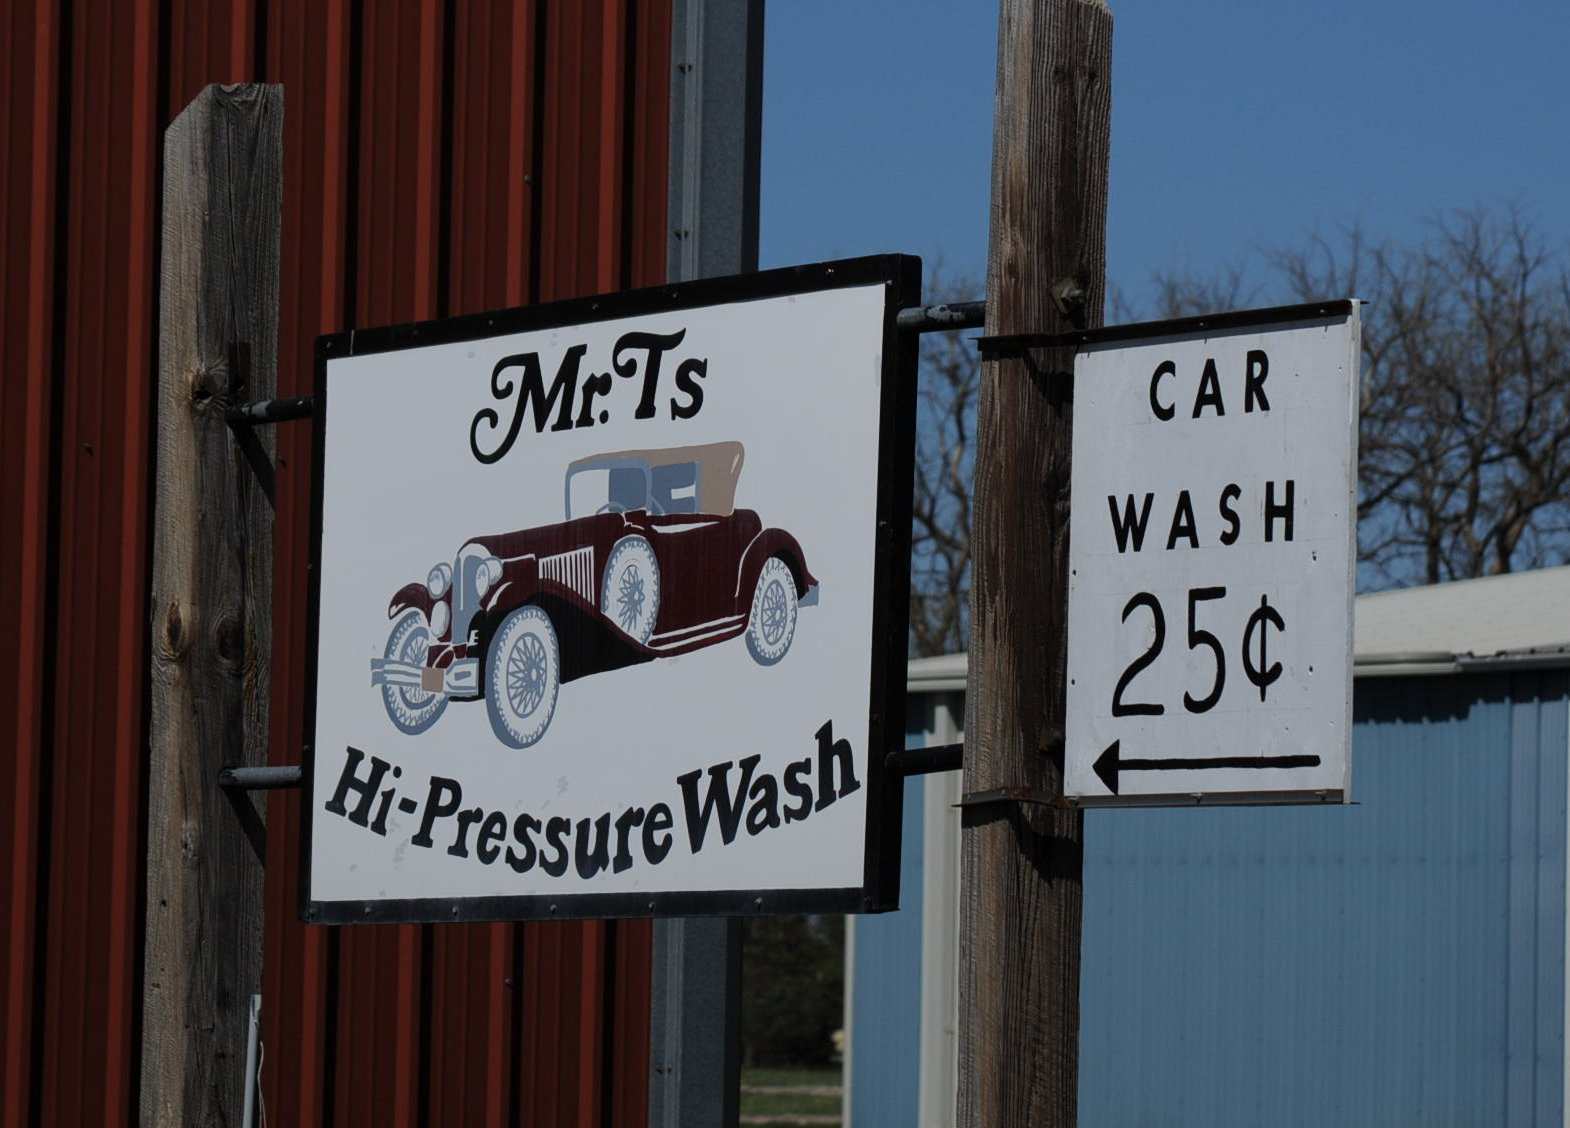 Mr. Ts Car Wash